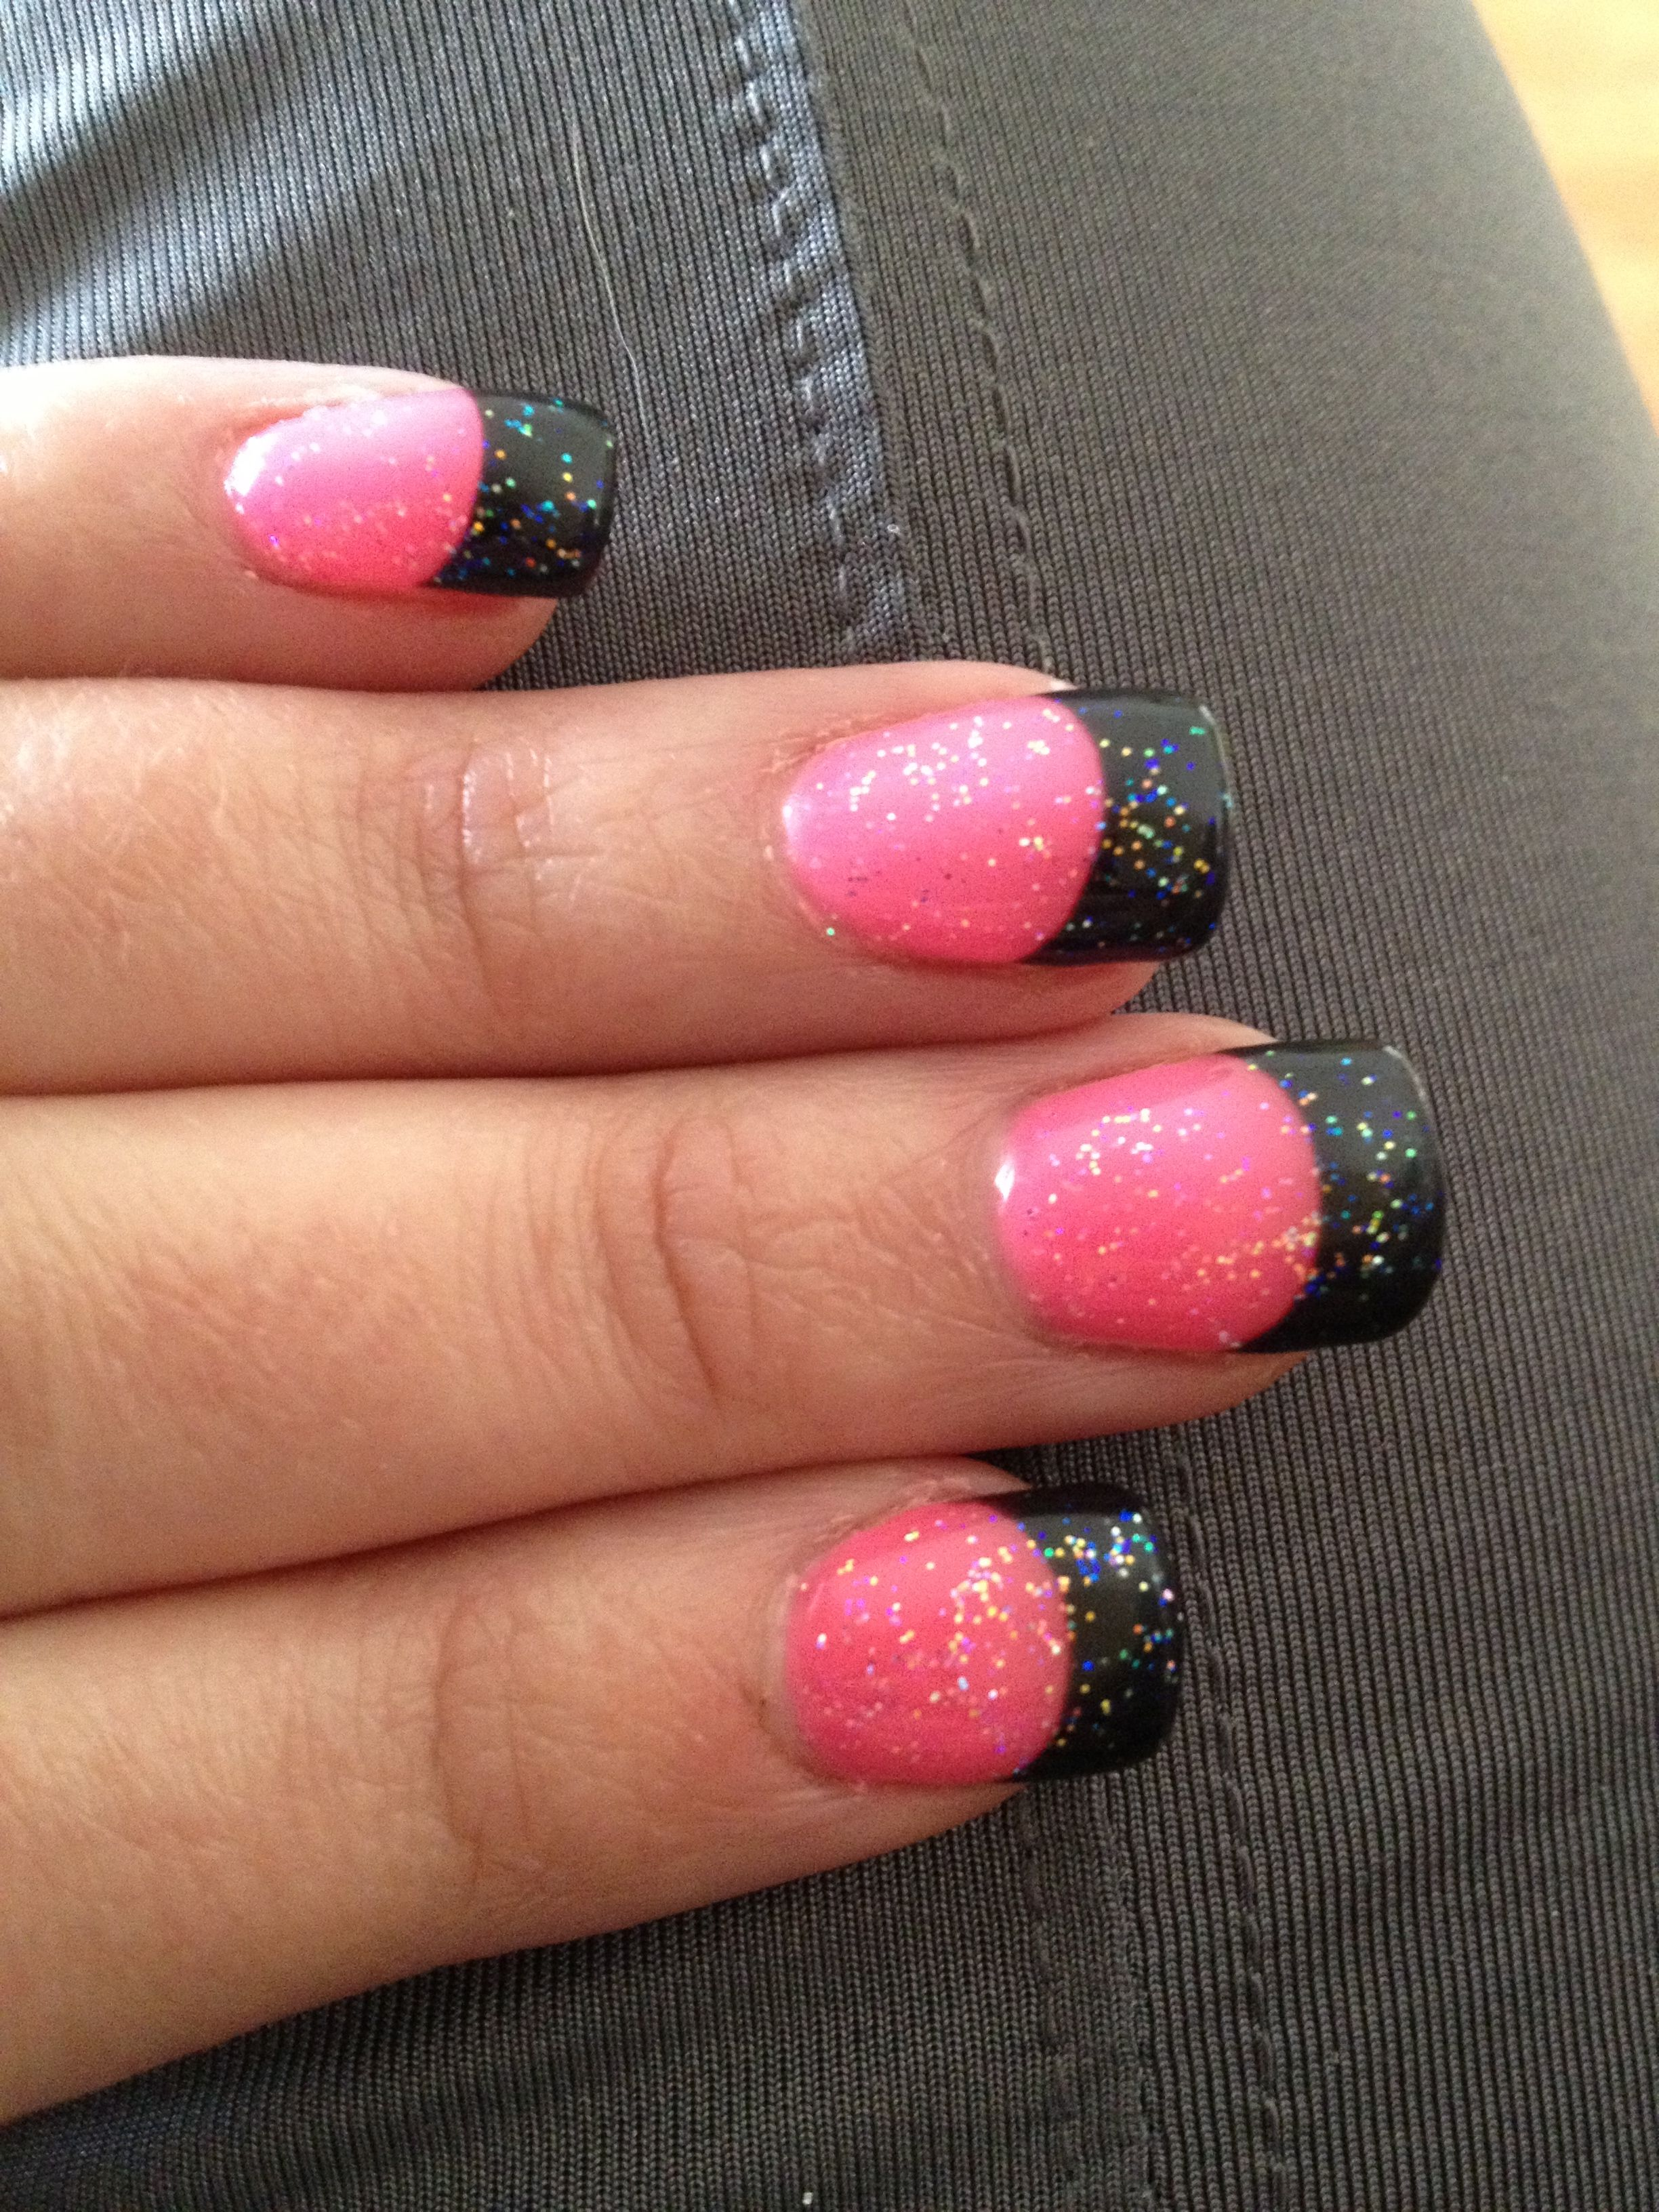 Hot Pink Nails With Black Tips And Iridescent Sparkles Minus